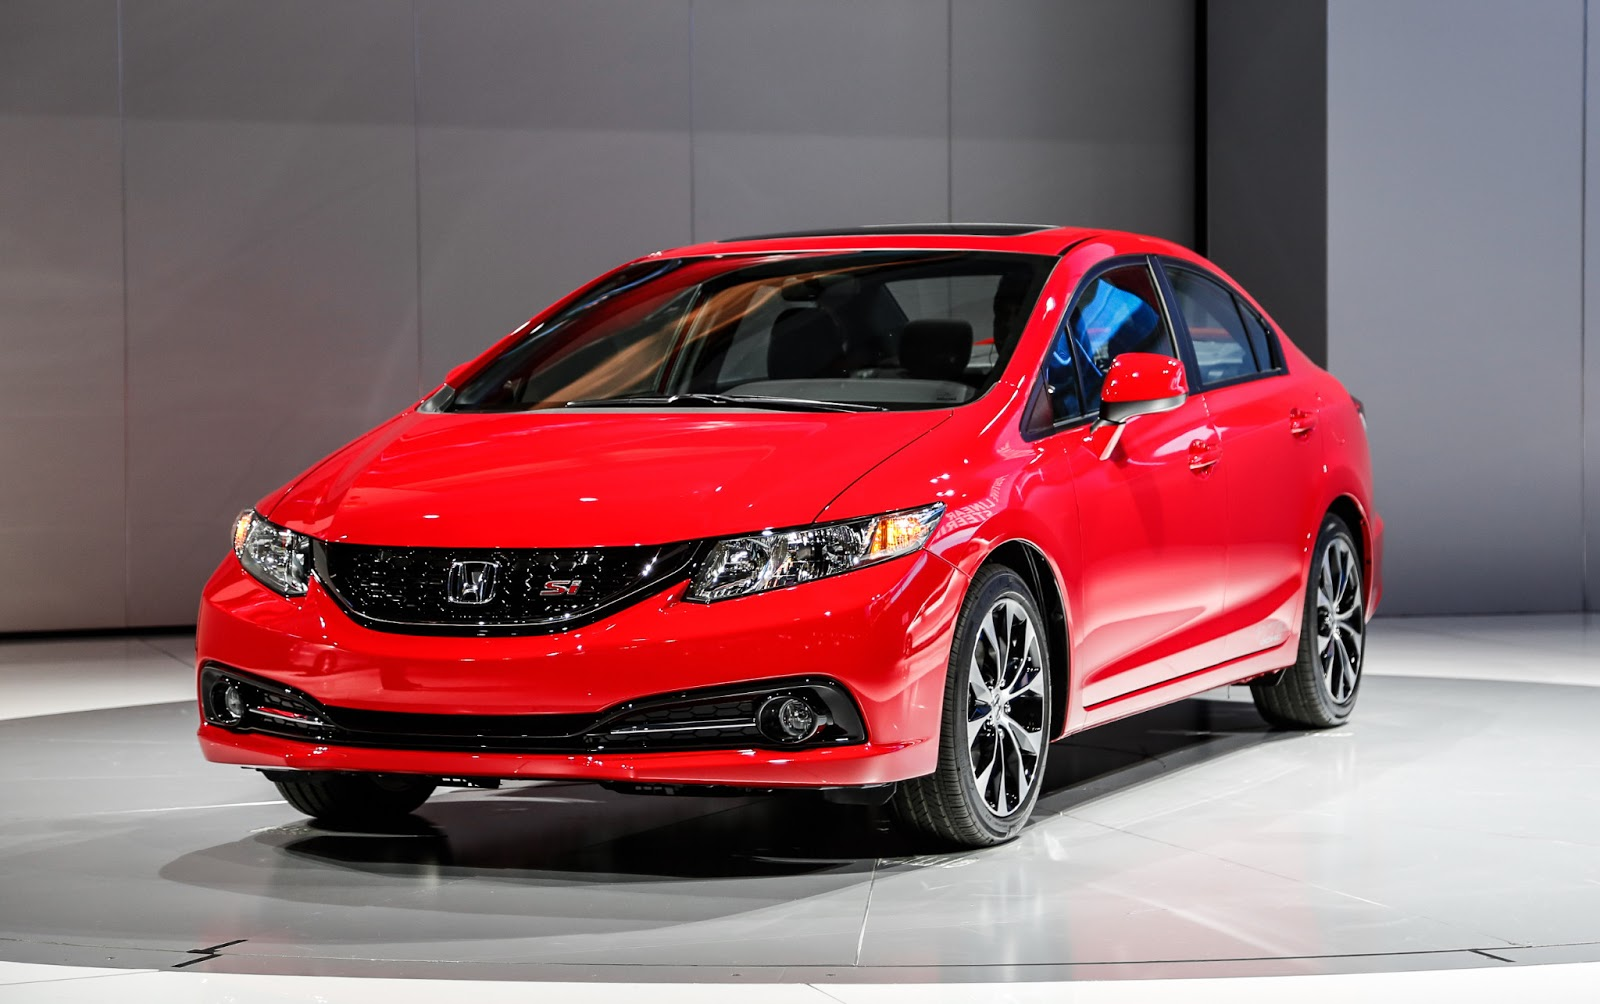 2013 honda civic si sedan new cars reviews for Si honda civic